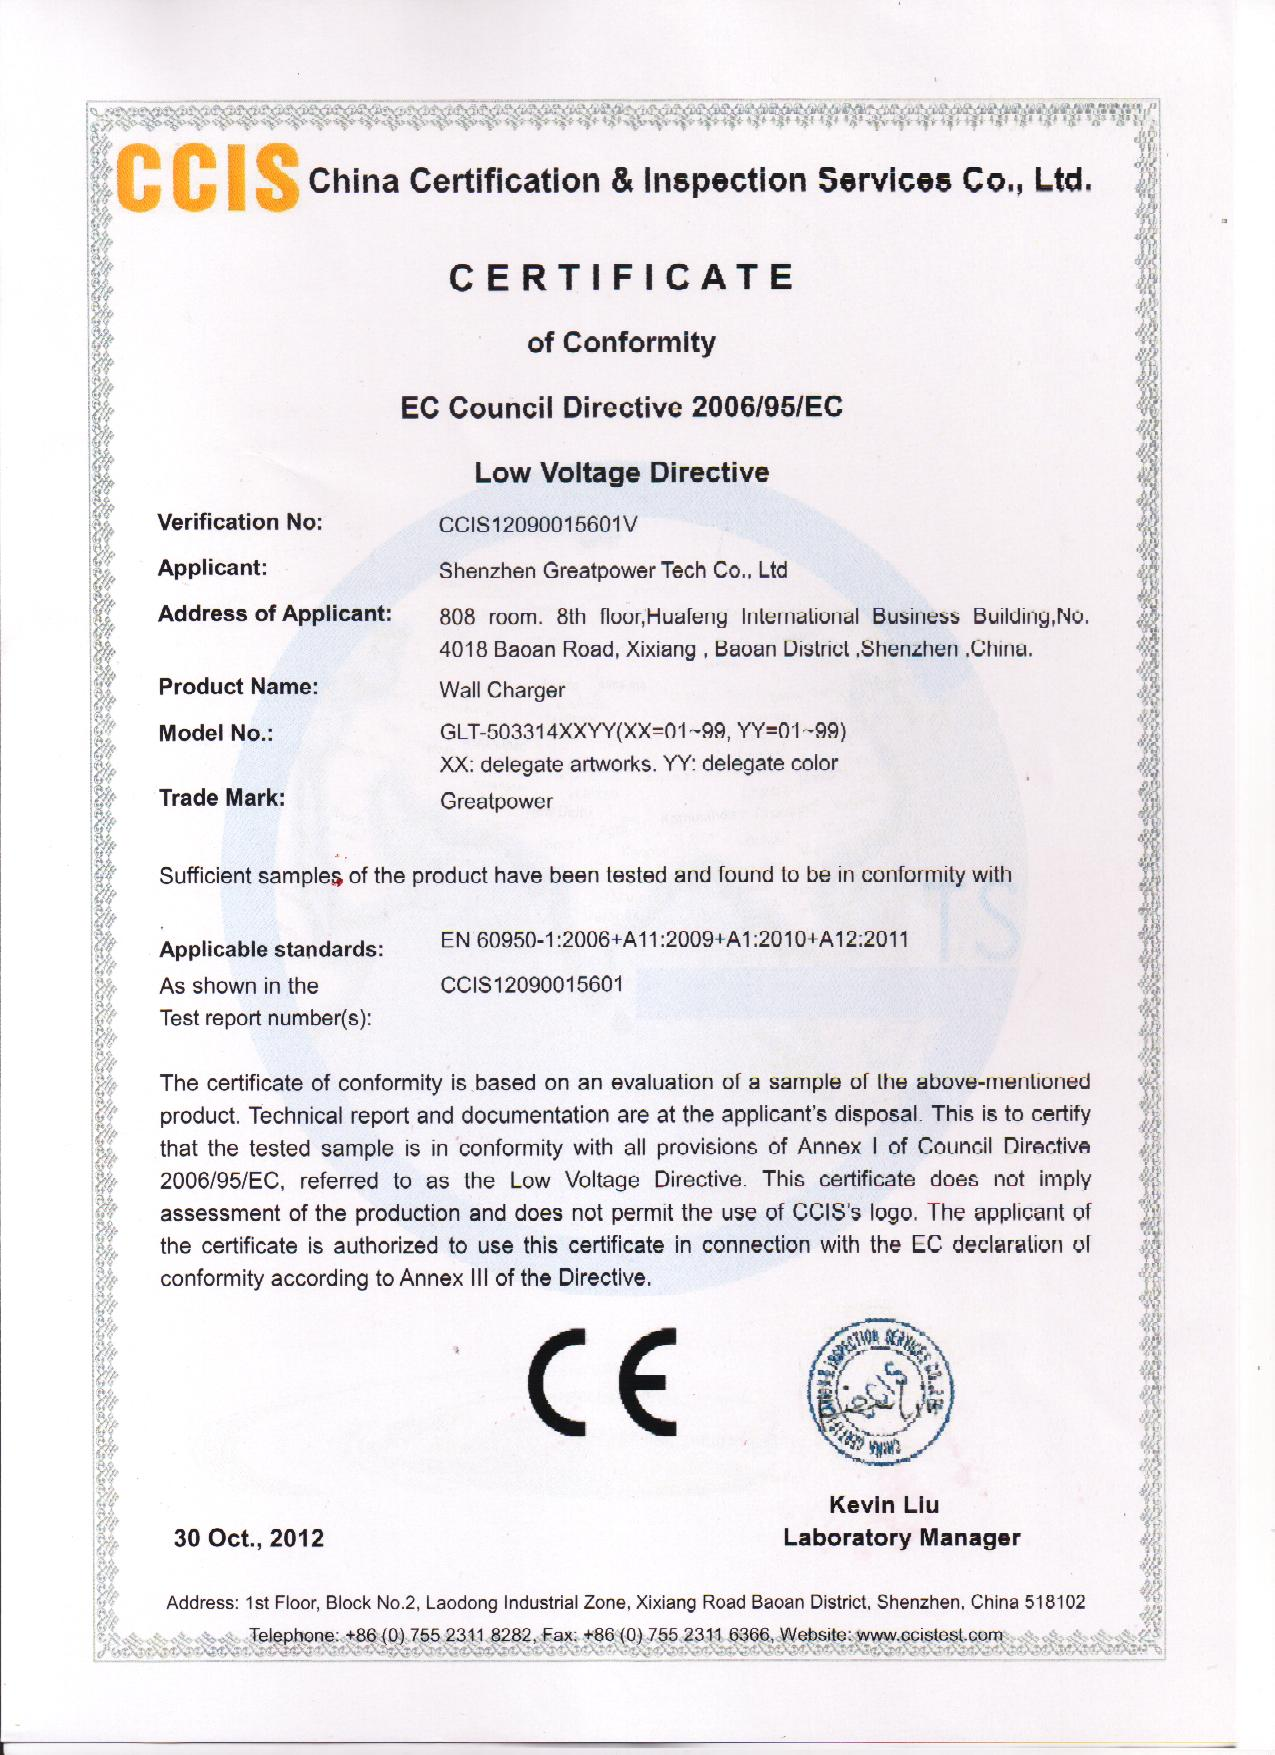 Shenzhen greatpower tech co ltd adapterswitching power certification 1betcityfo Gallery